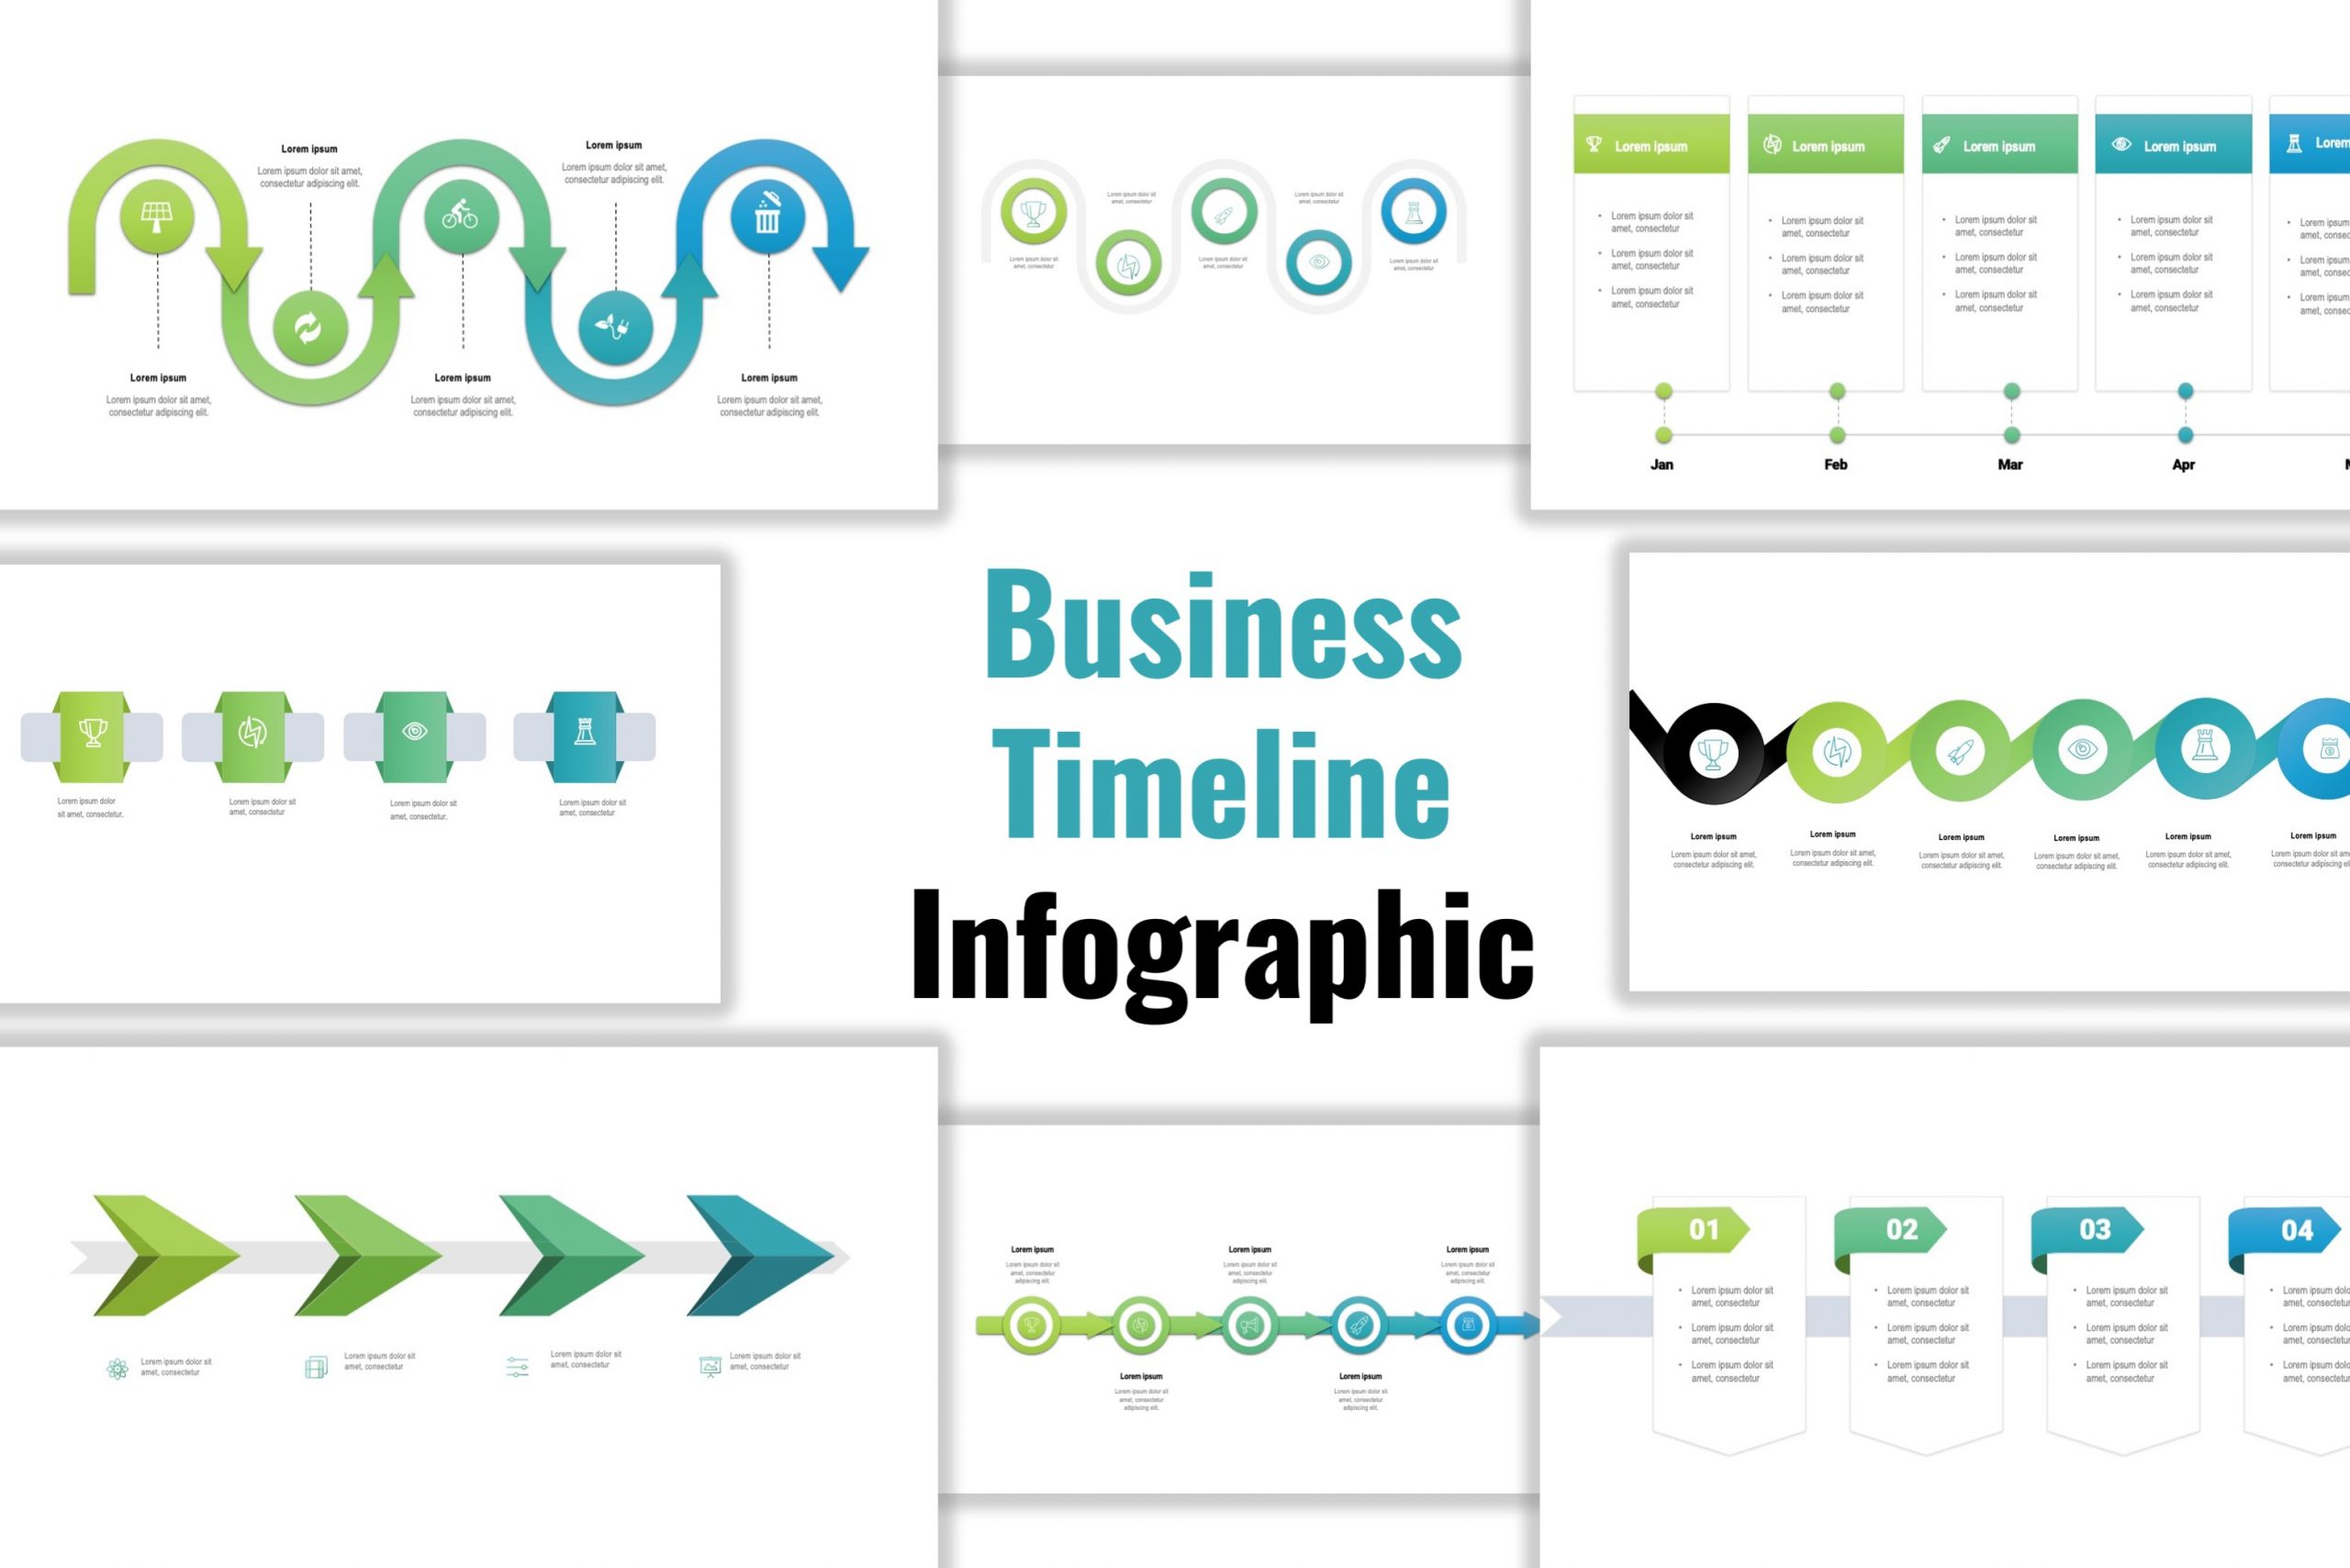 Business Timeline Infographic Template